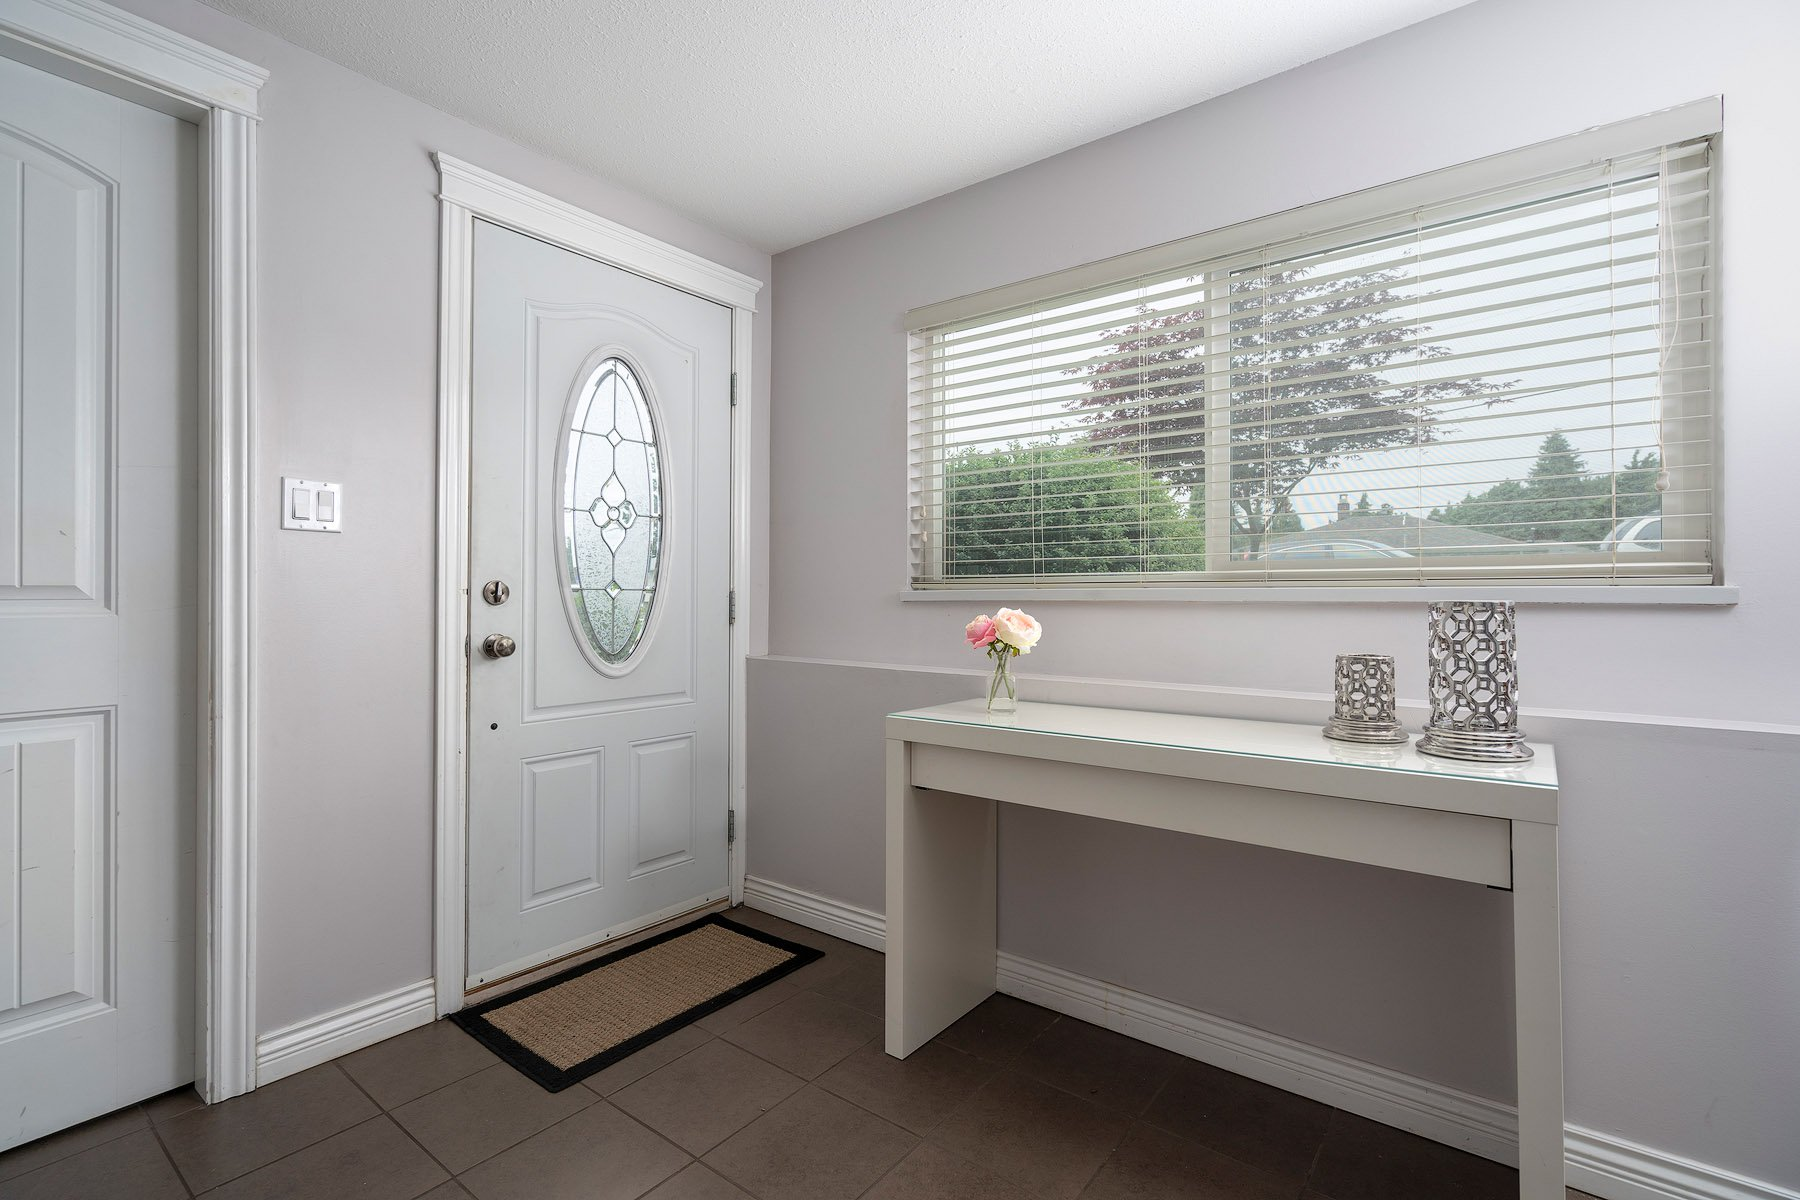 Photo 2: Photos: 423 MONTGOMERY Street in Coquitlam: Central Coquitlam House for sale : MLS®# R2380693